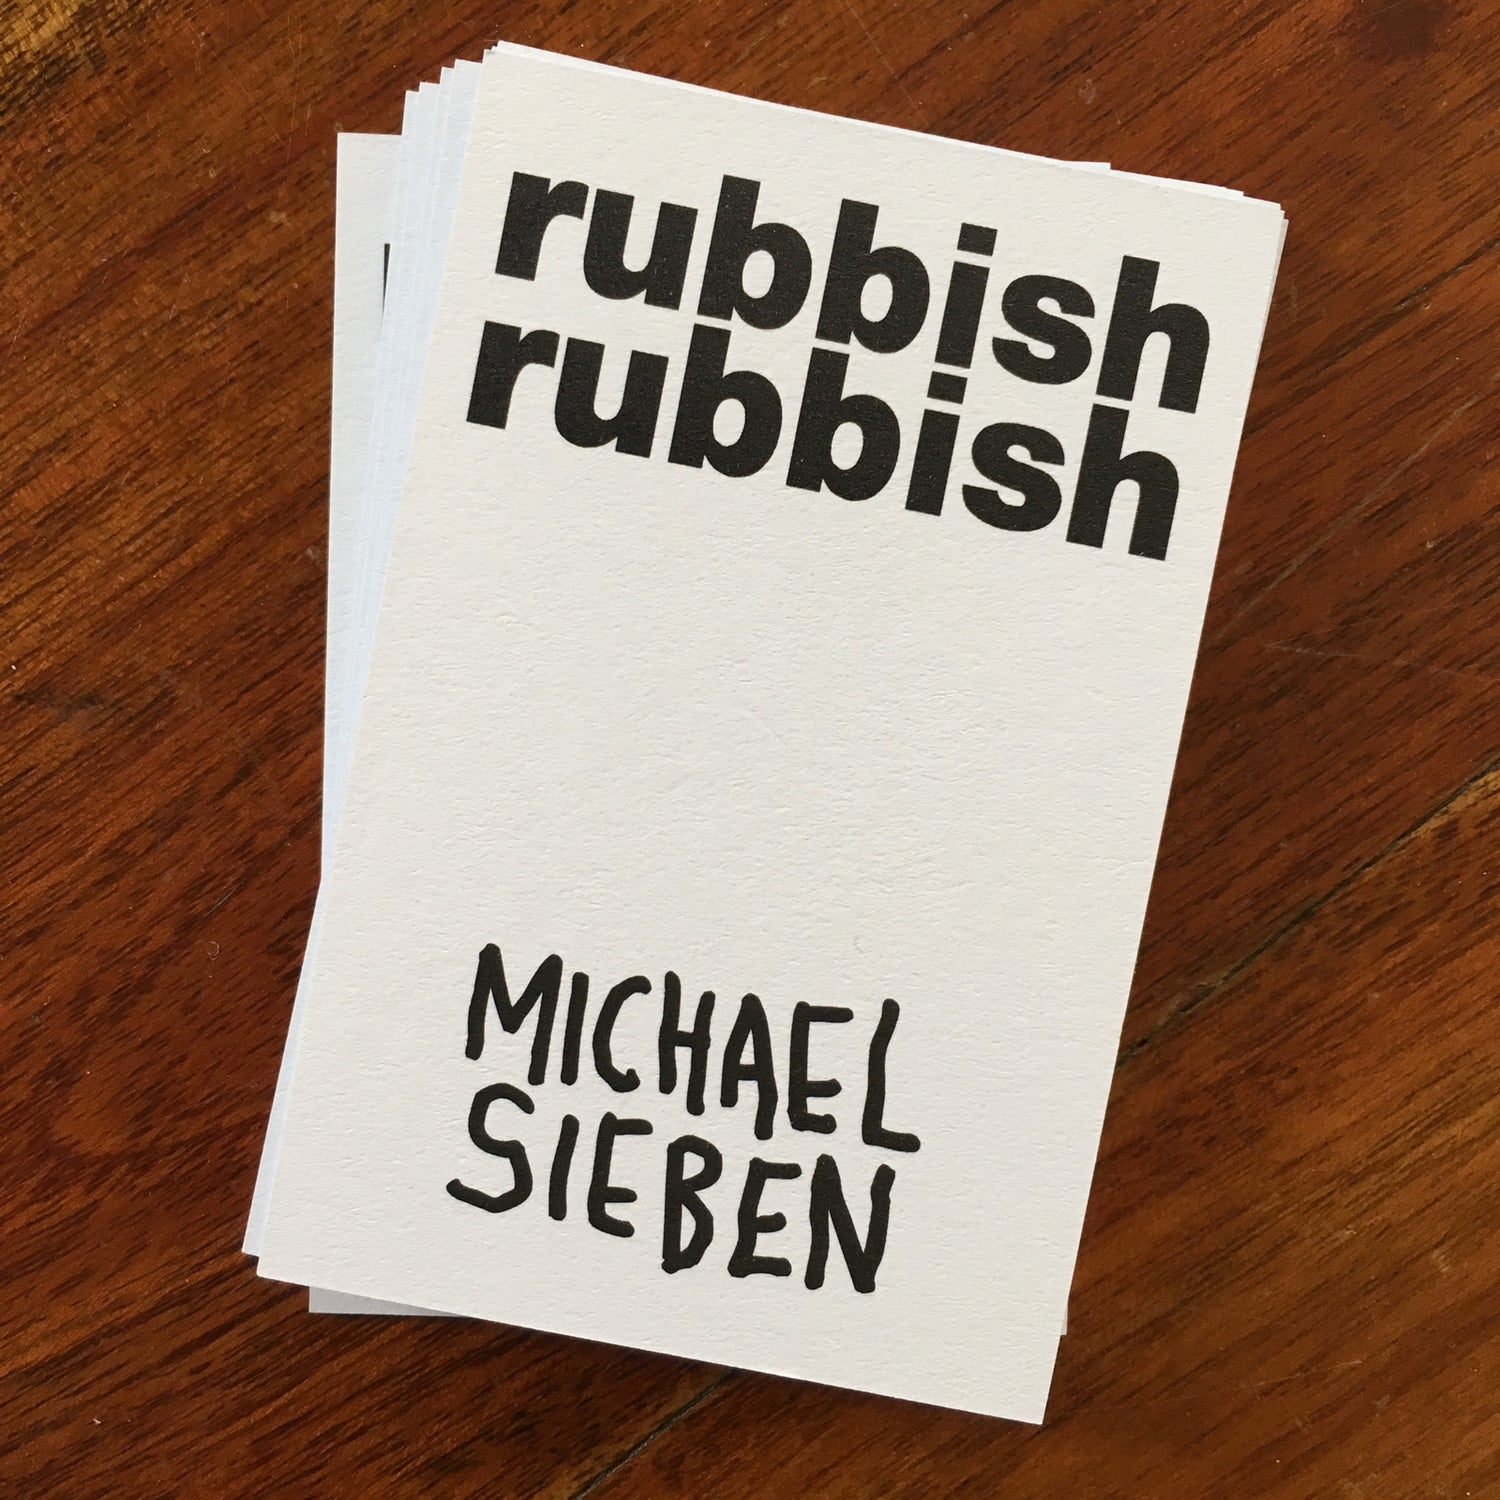 Image of Rubbish Rubbish 25 Michael Sieben